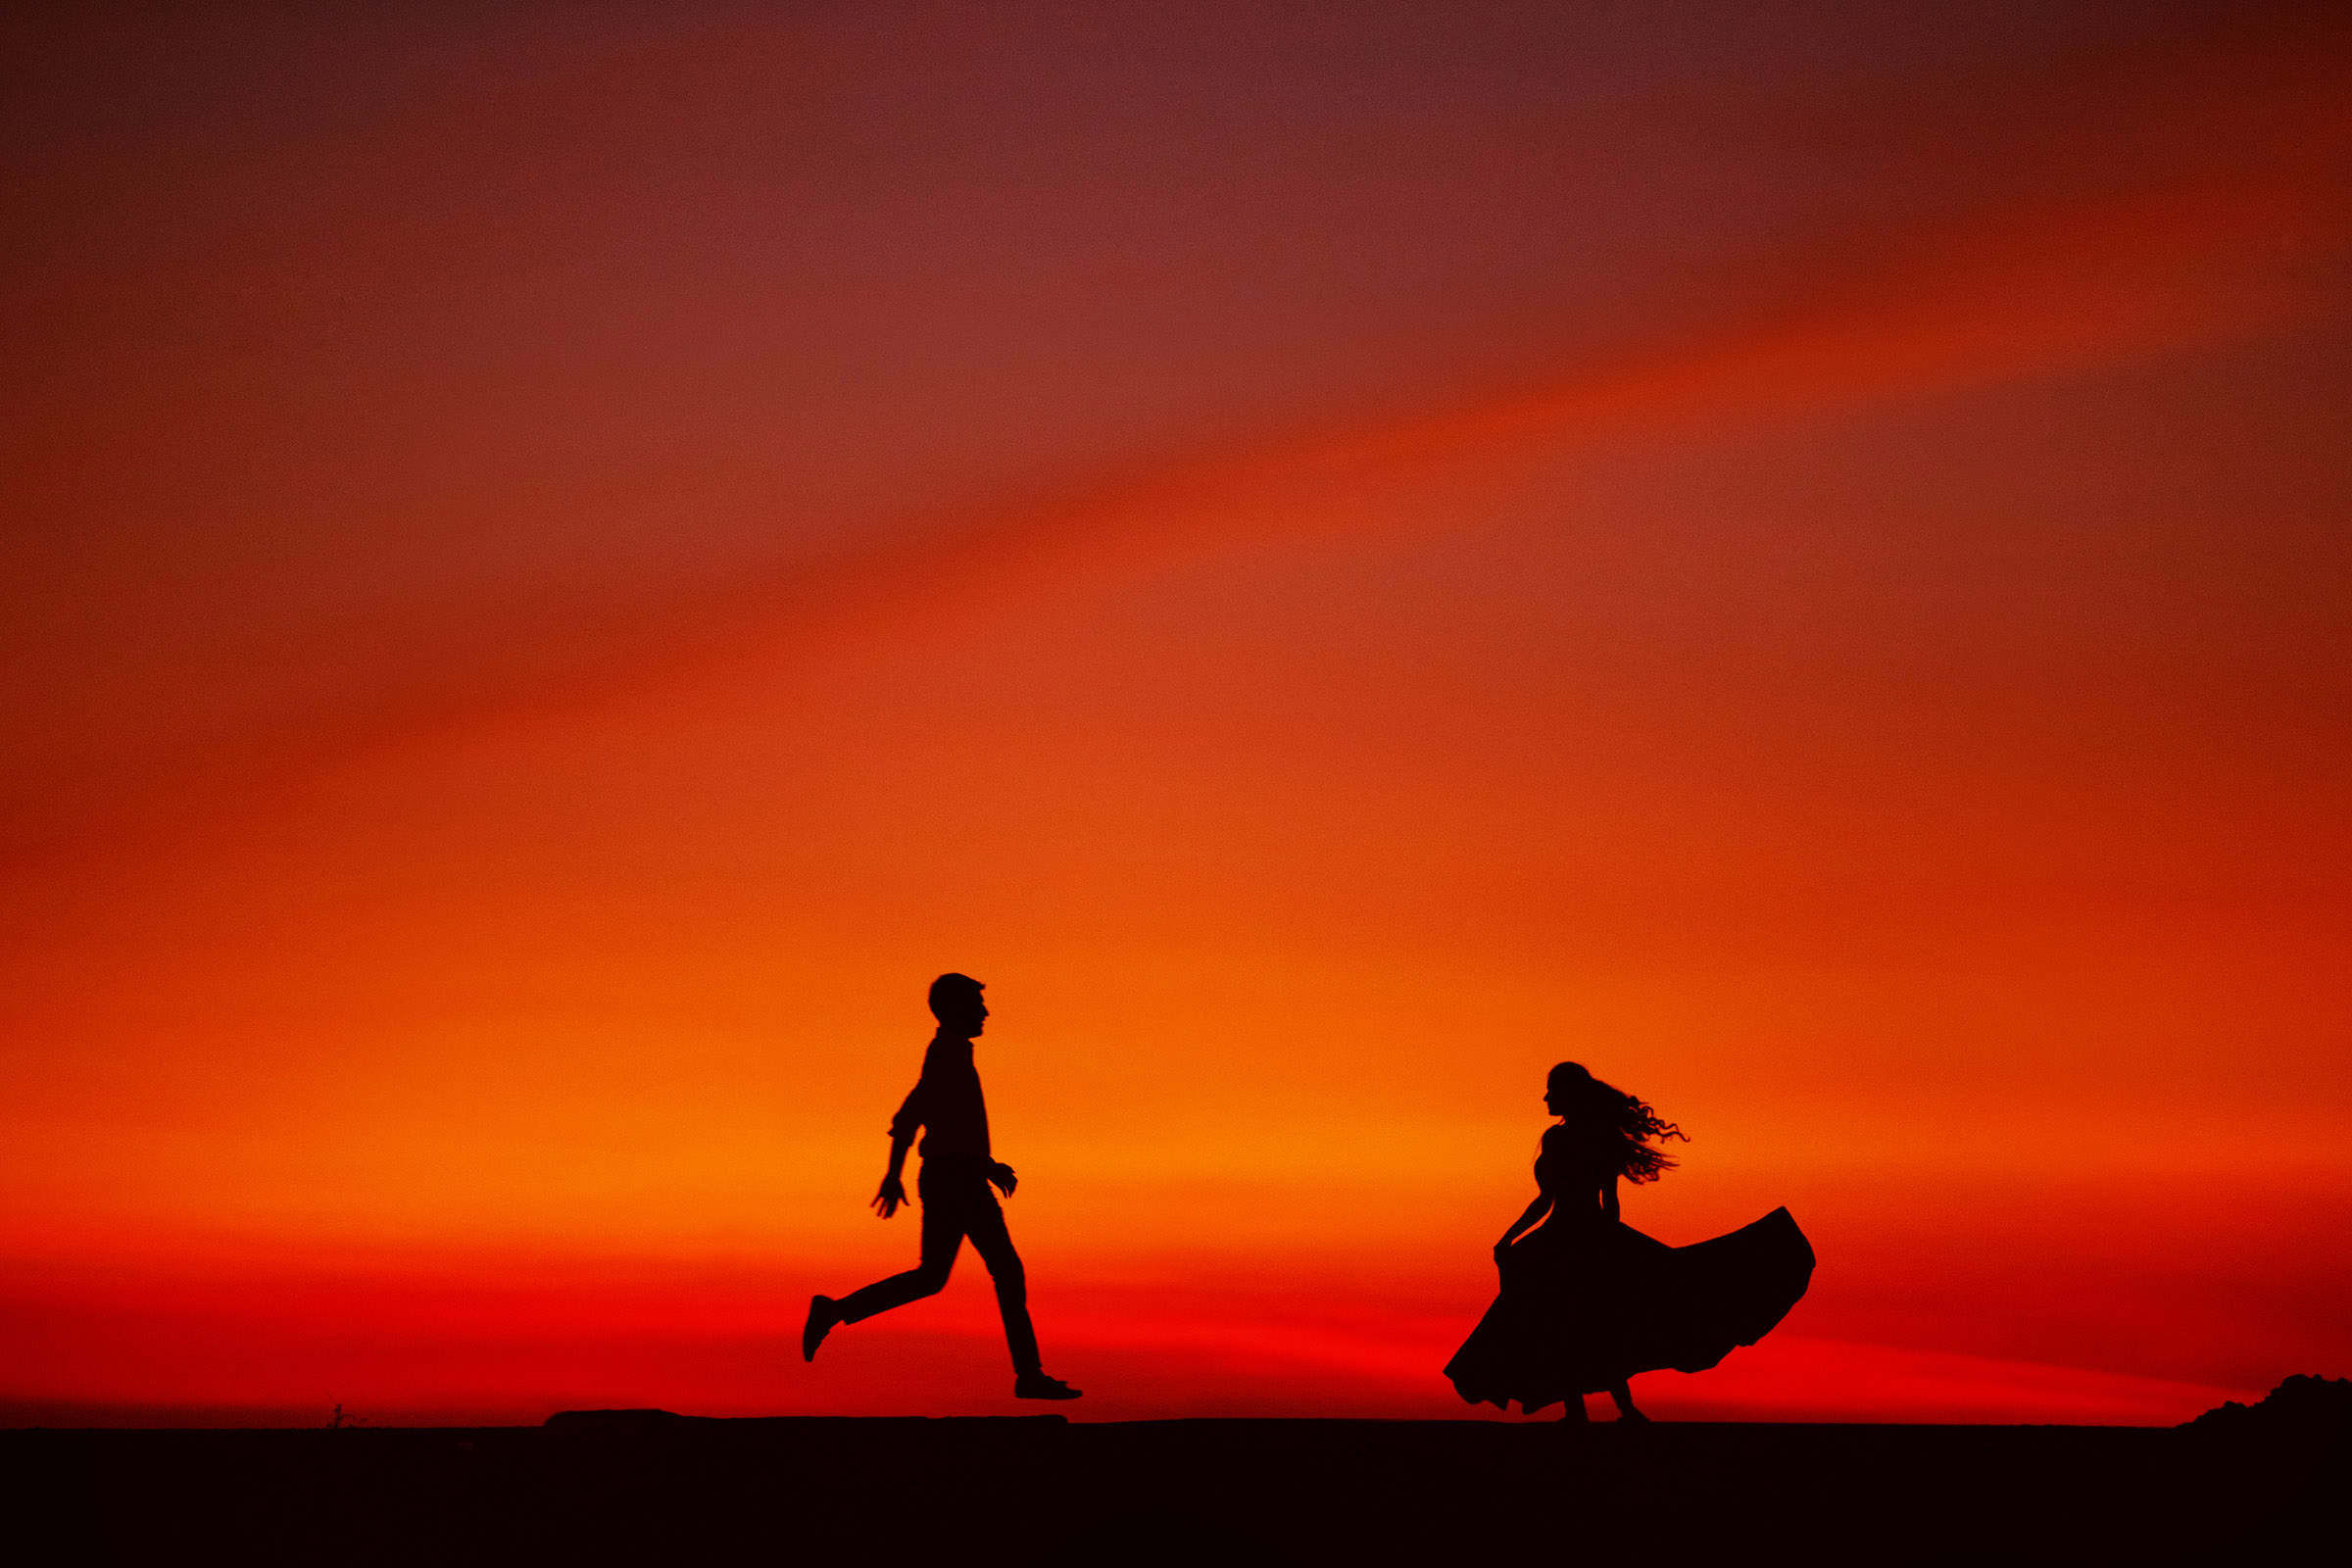 Sunset silhouette of couple running towards each other - photo by Shutterink Photography